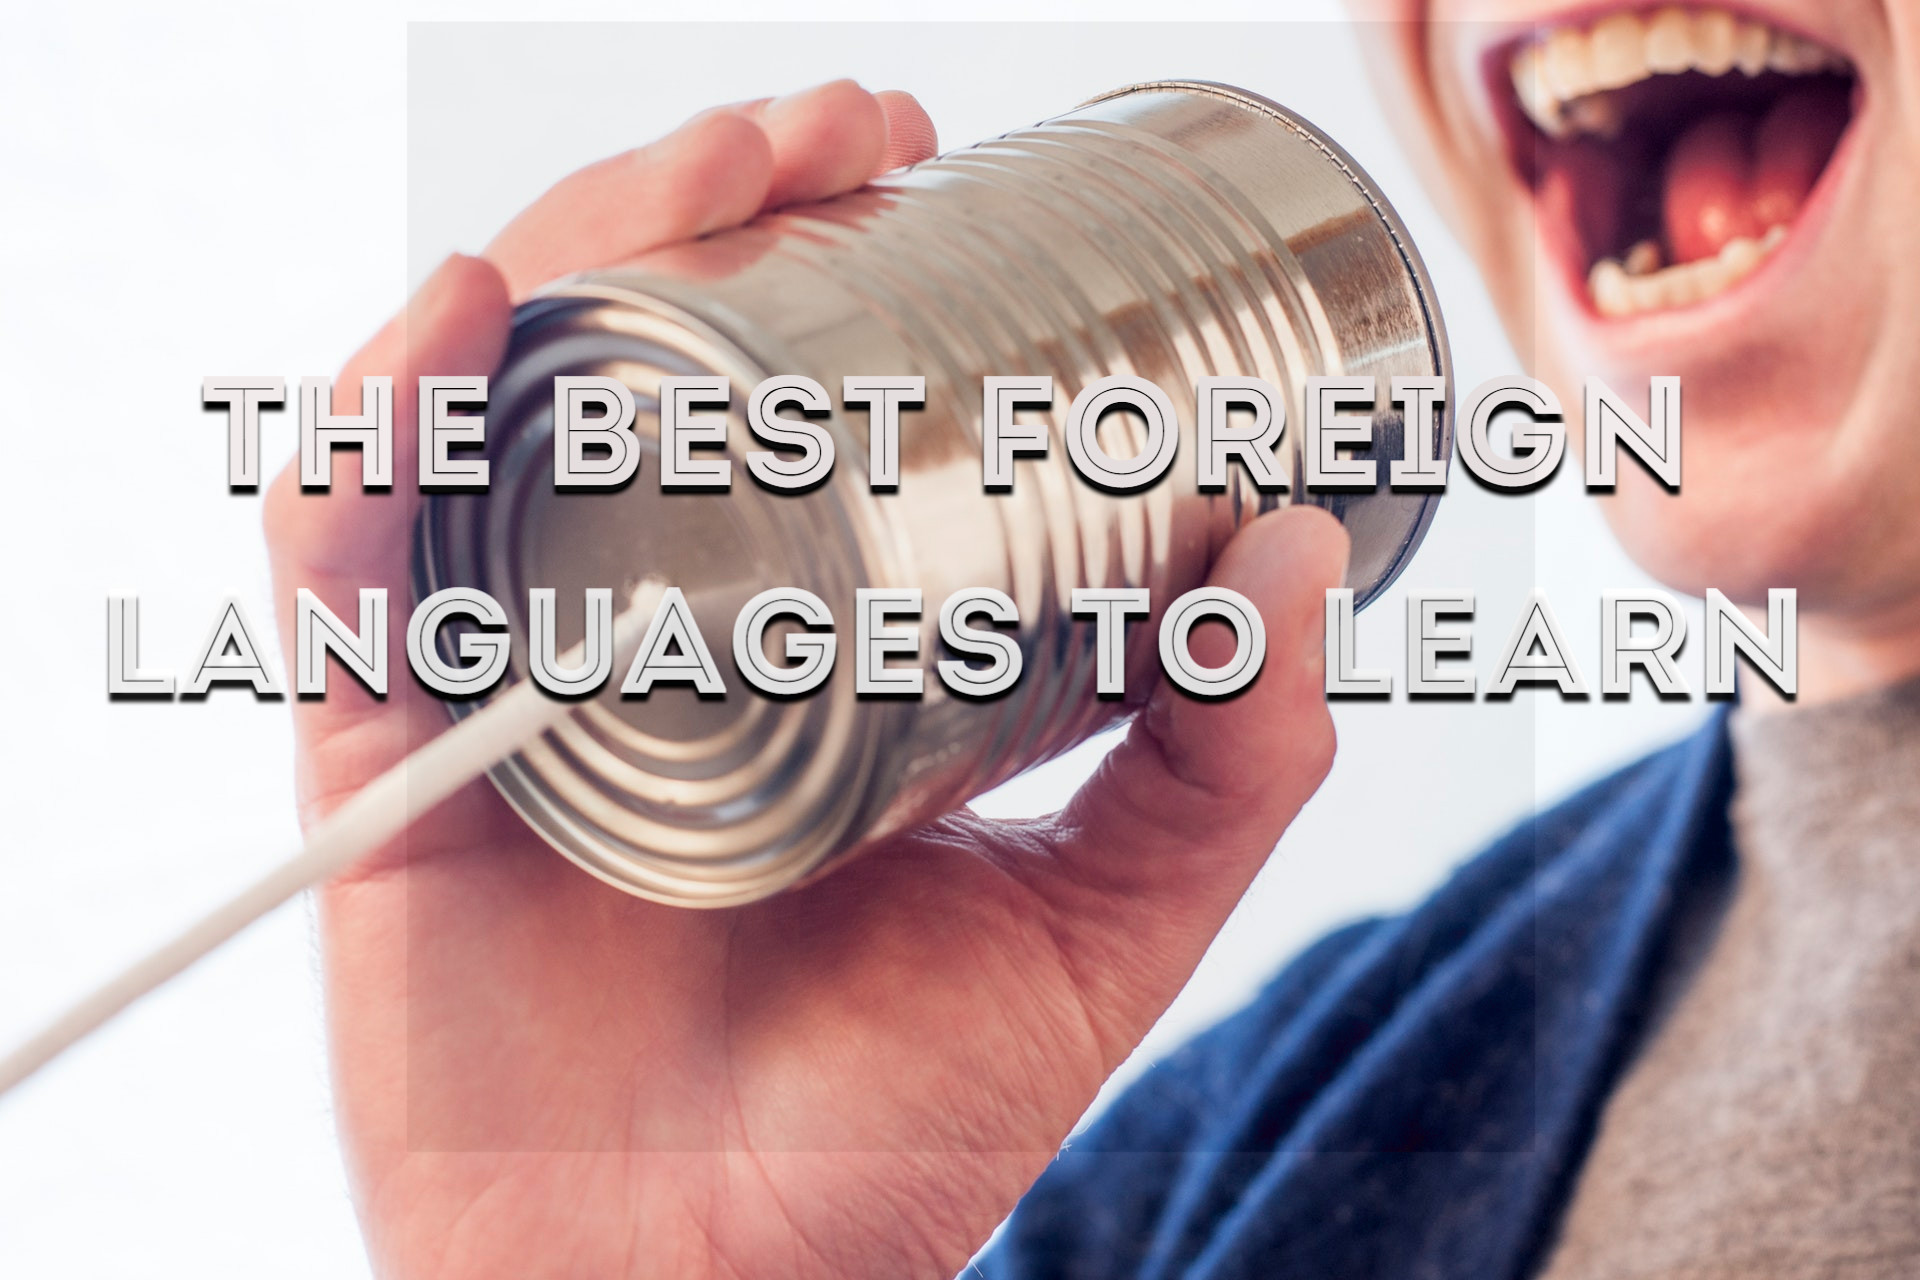 learn languages online,learn languages online free,learn french language online,english language learning online,learn chinese language online,learn spanish language online,online language learning courses,learn a new language online